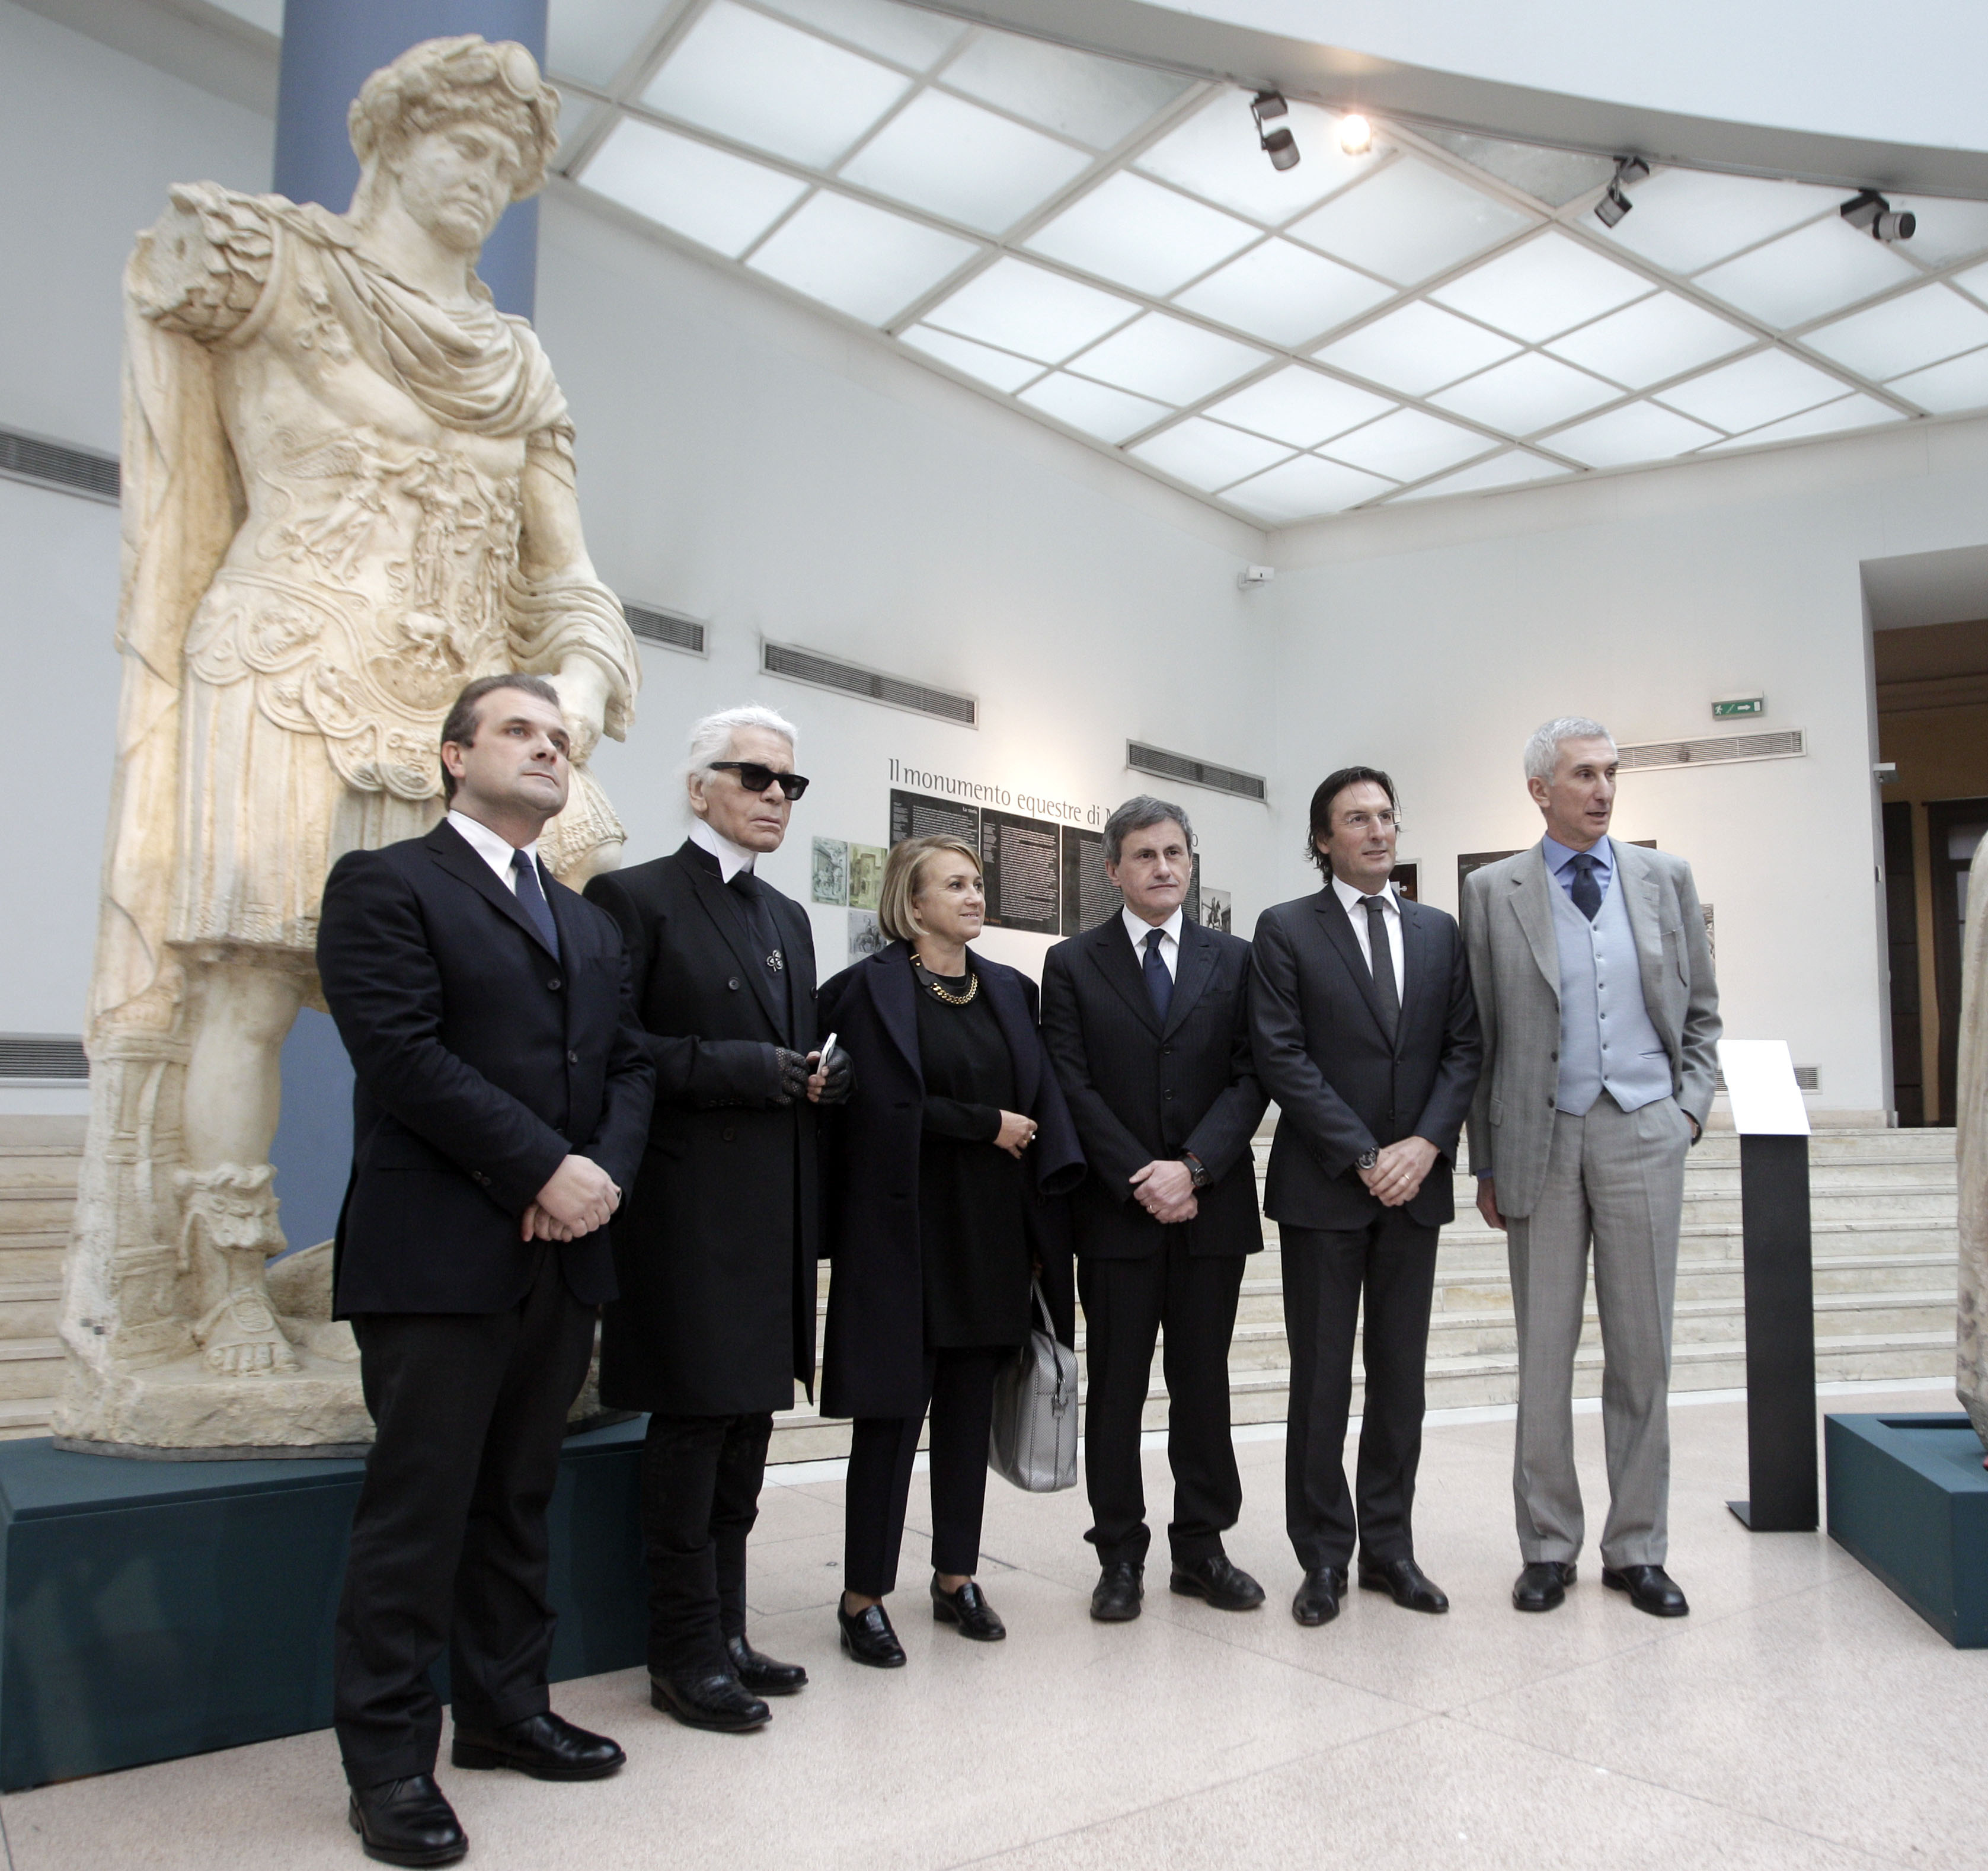 Karl Lagerfeld Joins Esteemed Group of Politicos, Influentials and FENDI Executives to Announce Restoration Project